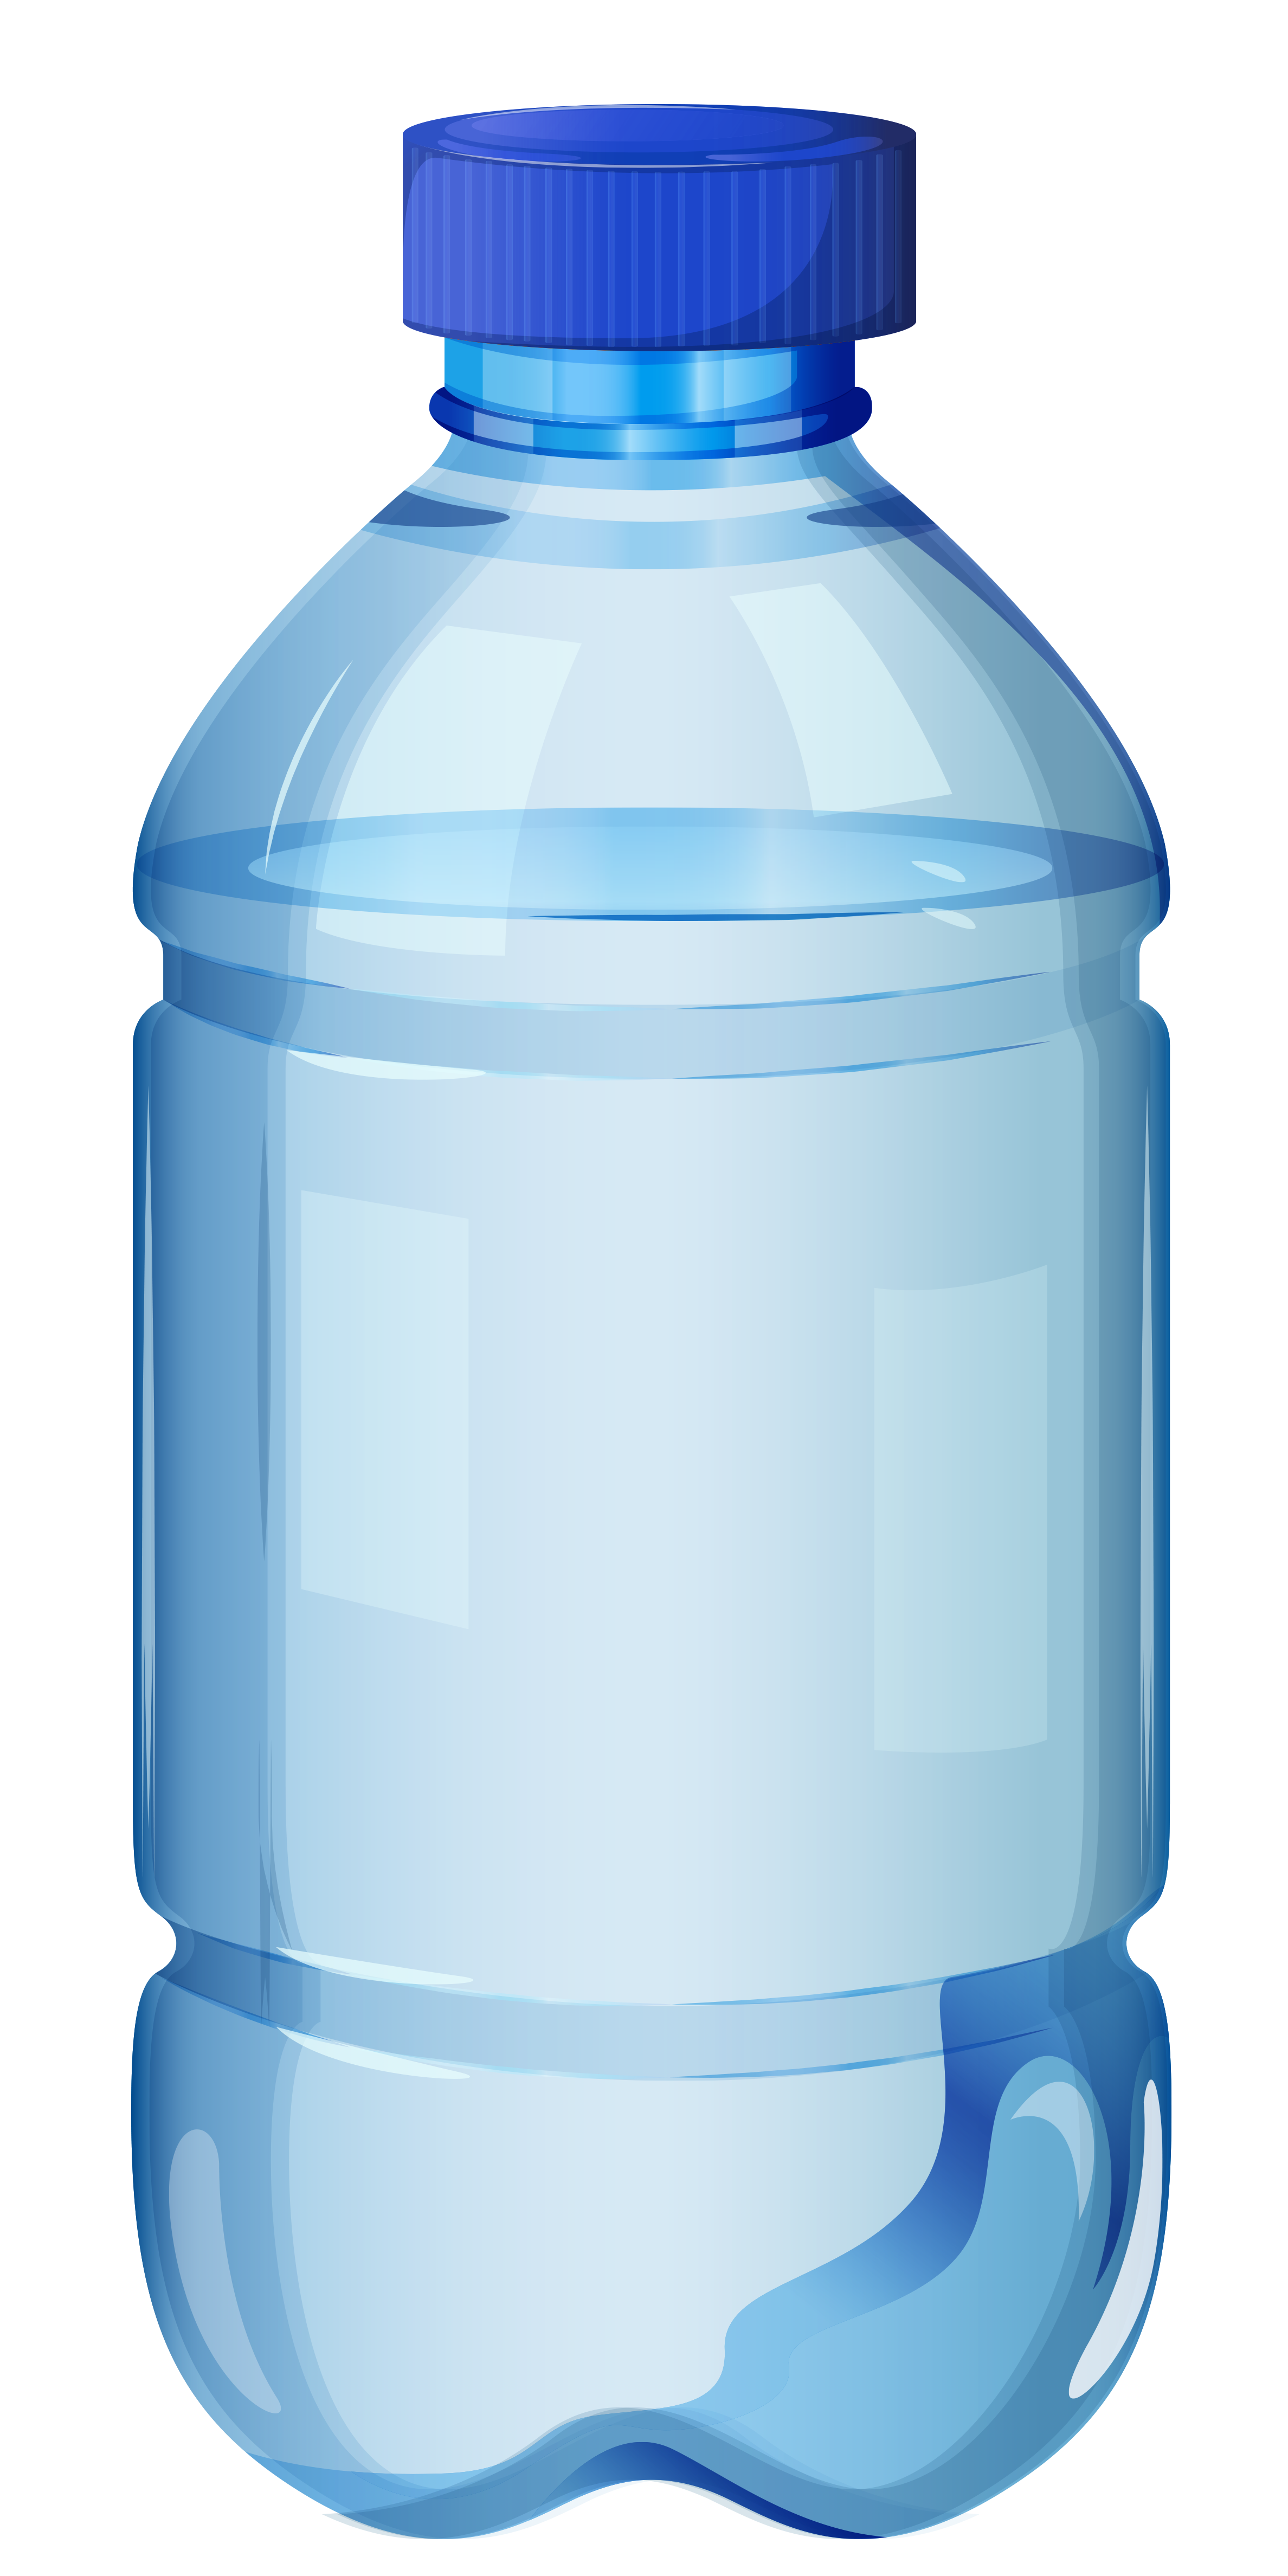 View of water clipart image freeuse stock Small Bottle of Mineral Water PNG Clipart Image | Gallery ... image freeuse stock